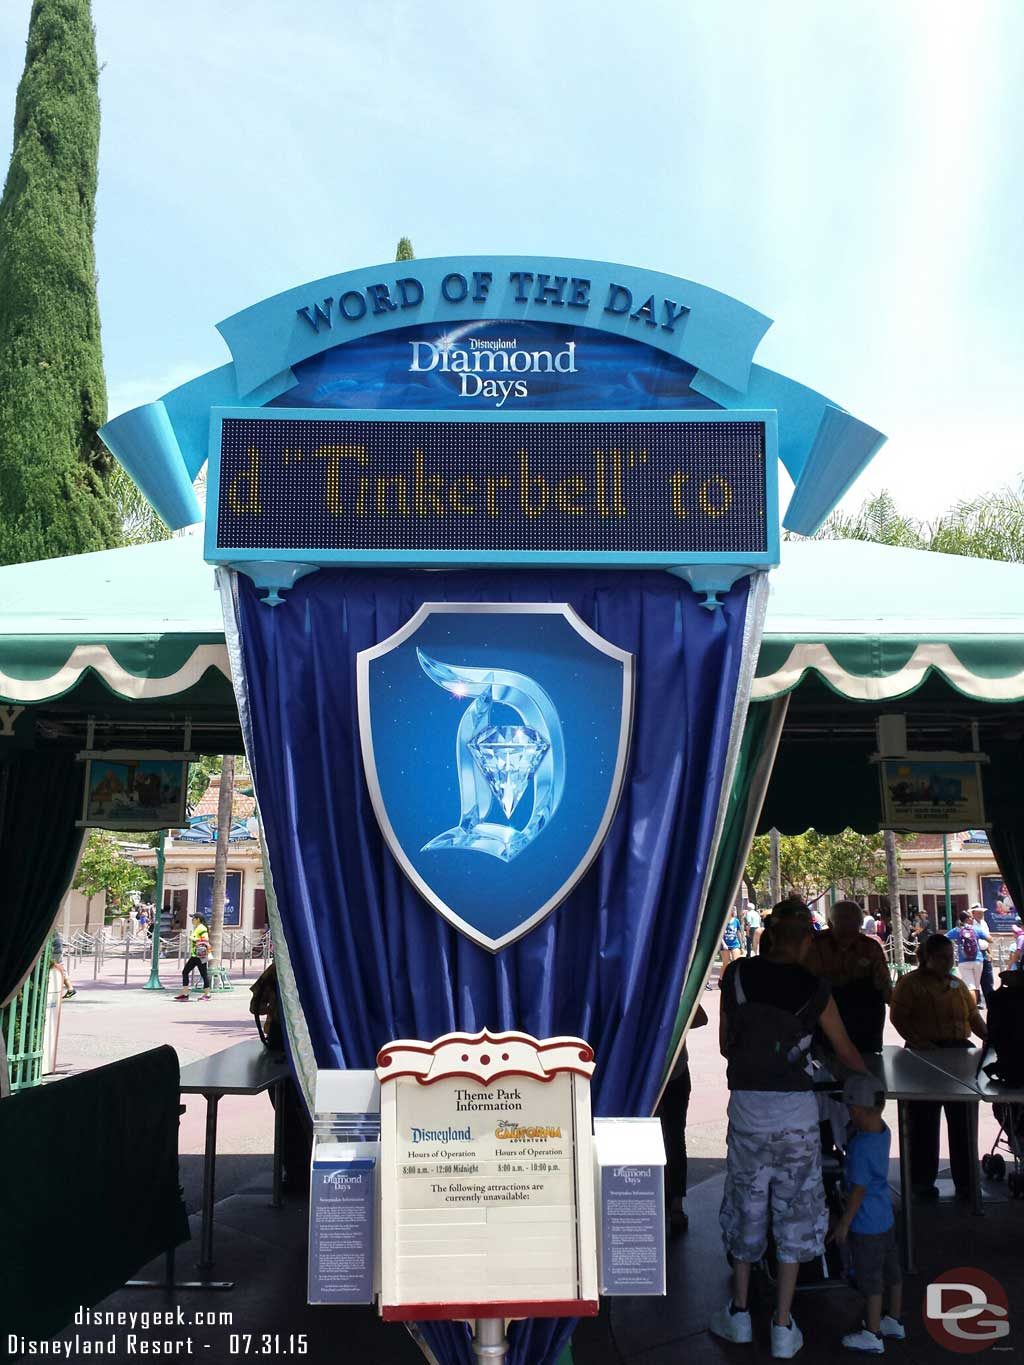 Just arrived at #Disneyland – #Disneyland60 word of the day today